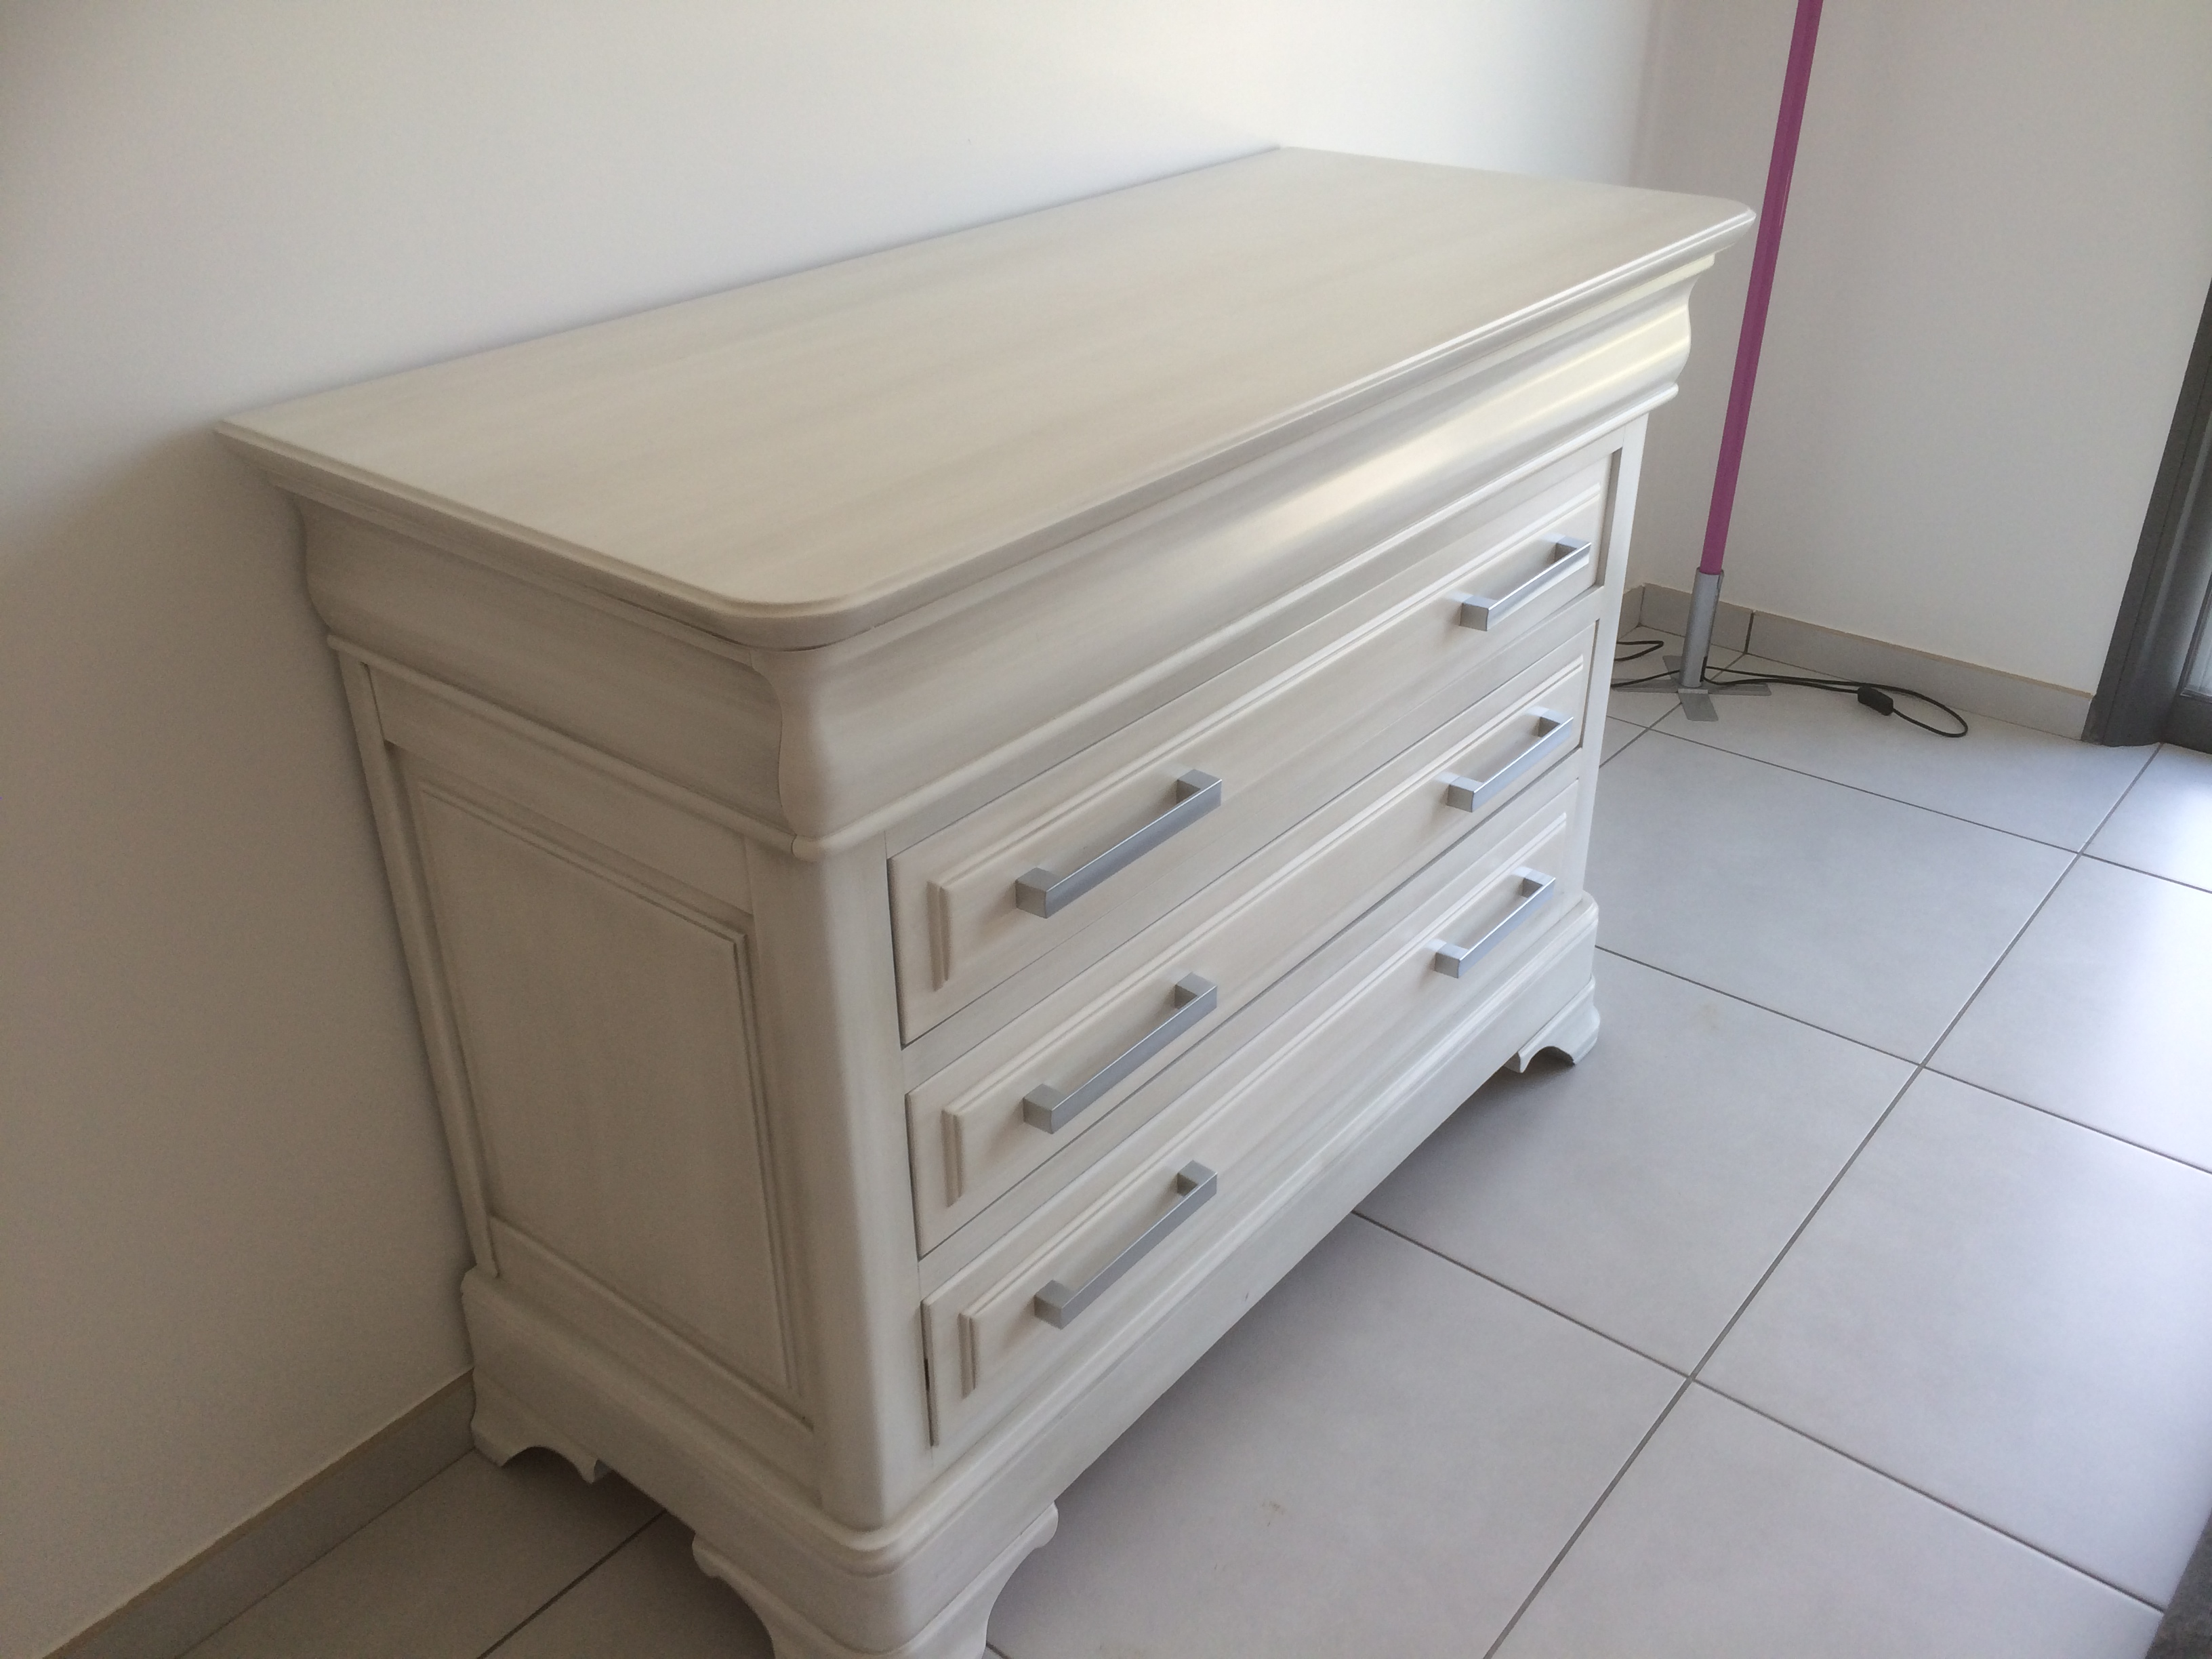 Une commode commode malm deuxieme etape with une commode en tapes transformer une commode en - Repeindre une commode ...